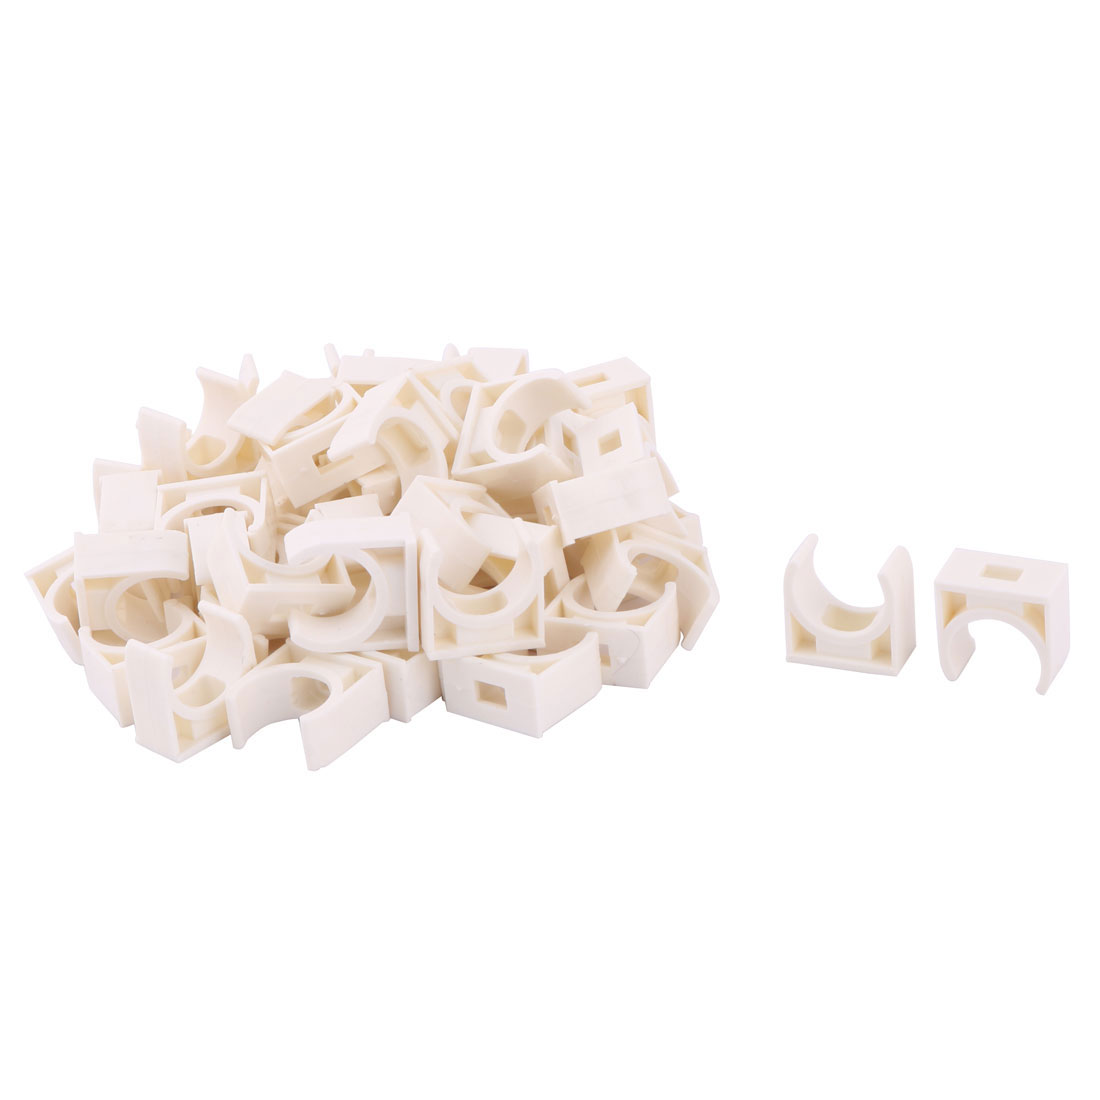 Home PVC U Shaped Water Supply Tube Pipe Holder Clamps Clips 16mm Dia 50 Pcs